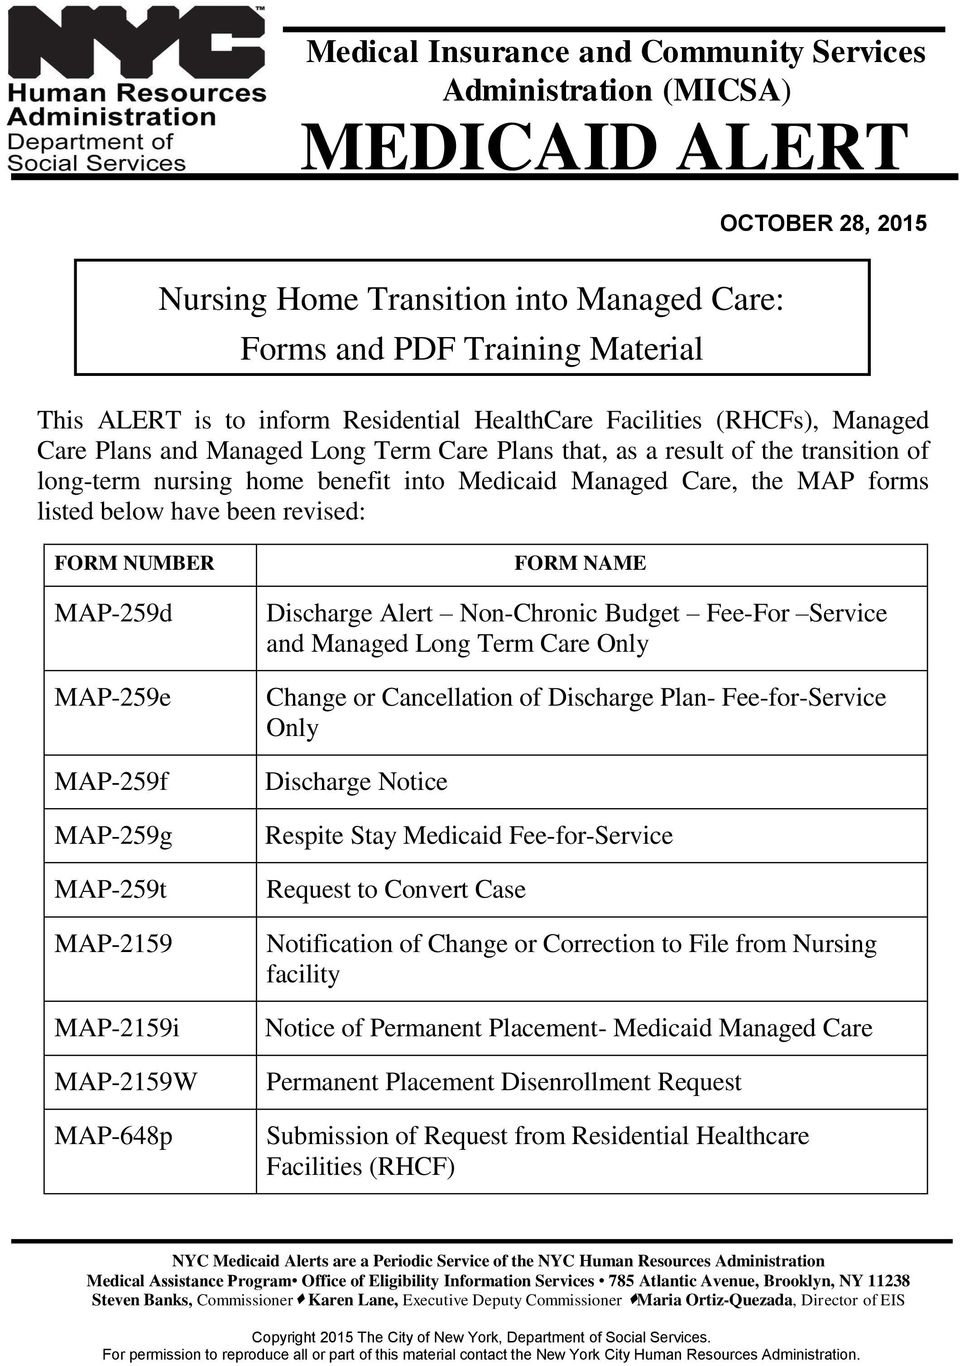 Nursing home transition into managed care forms and pdf for Form 2159